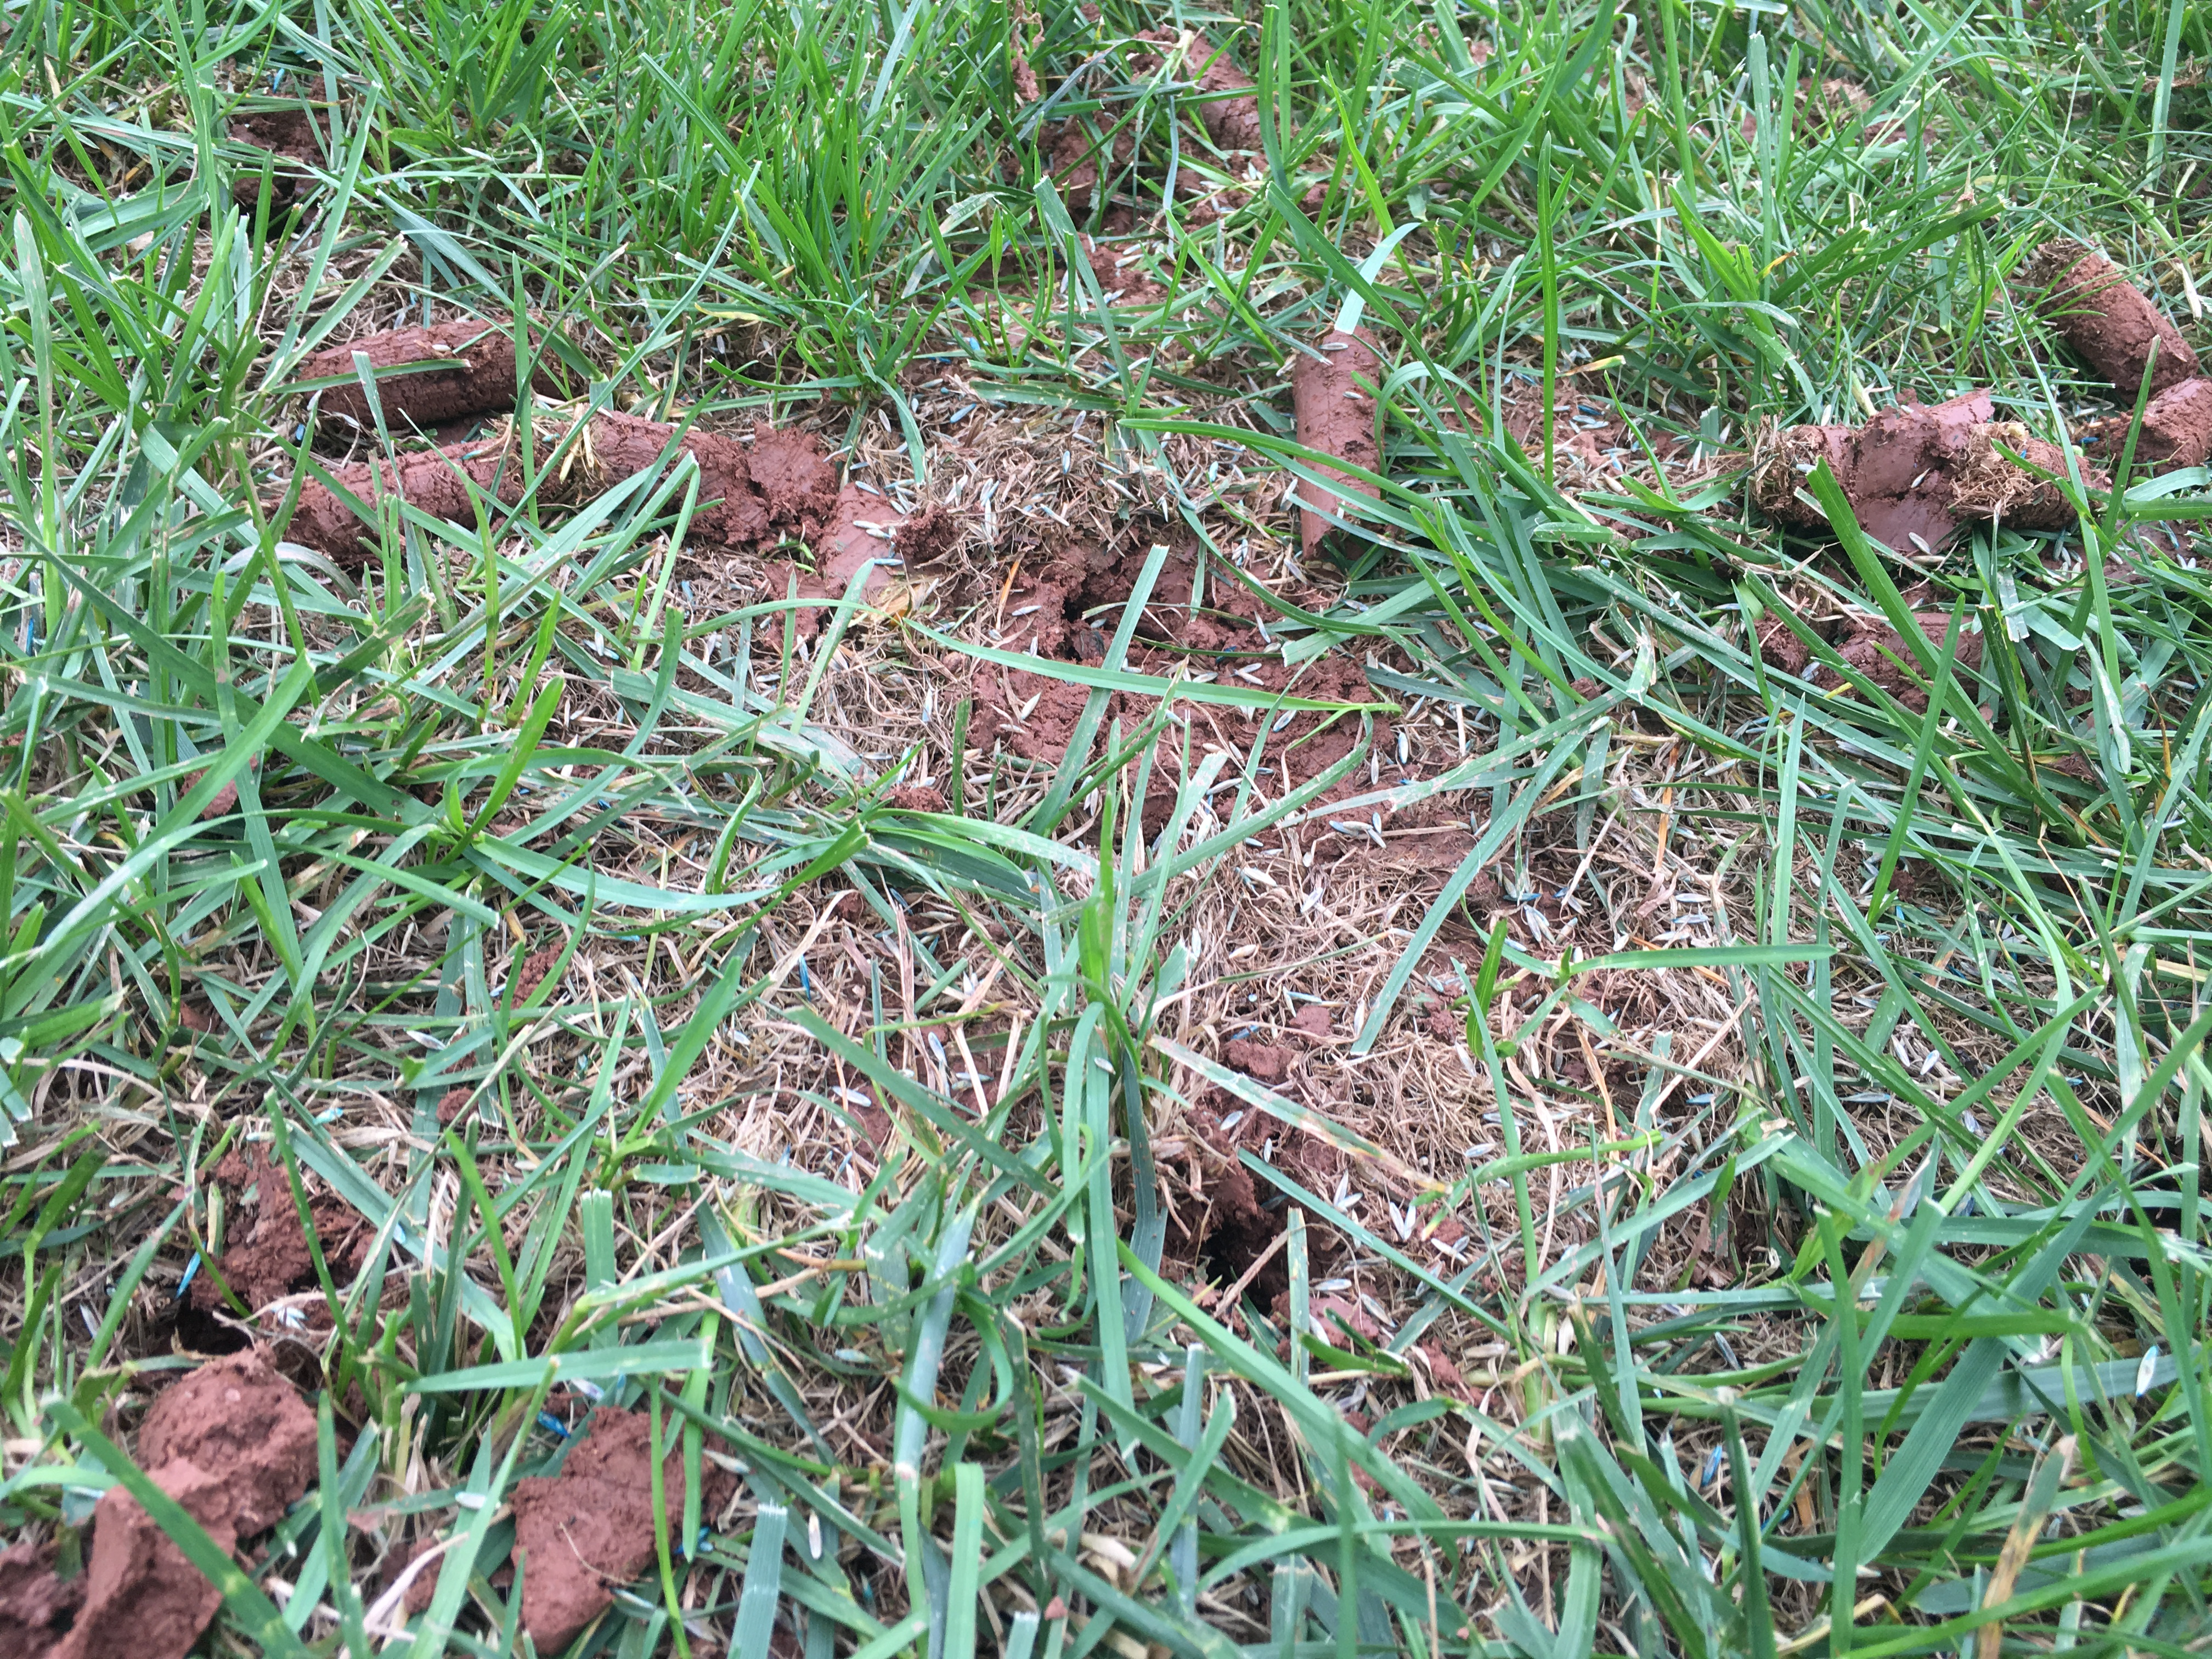 Soil cores from aerating